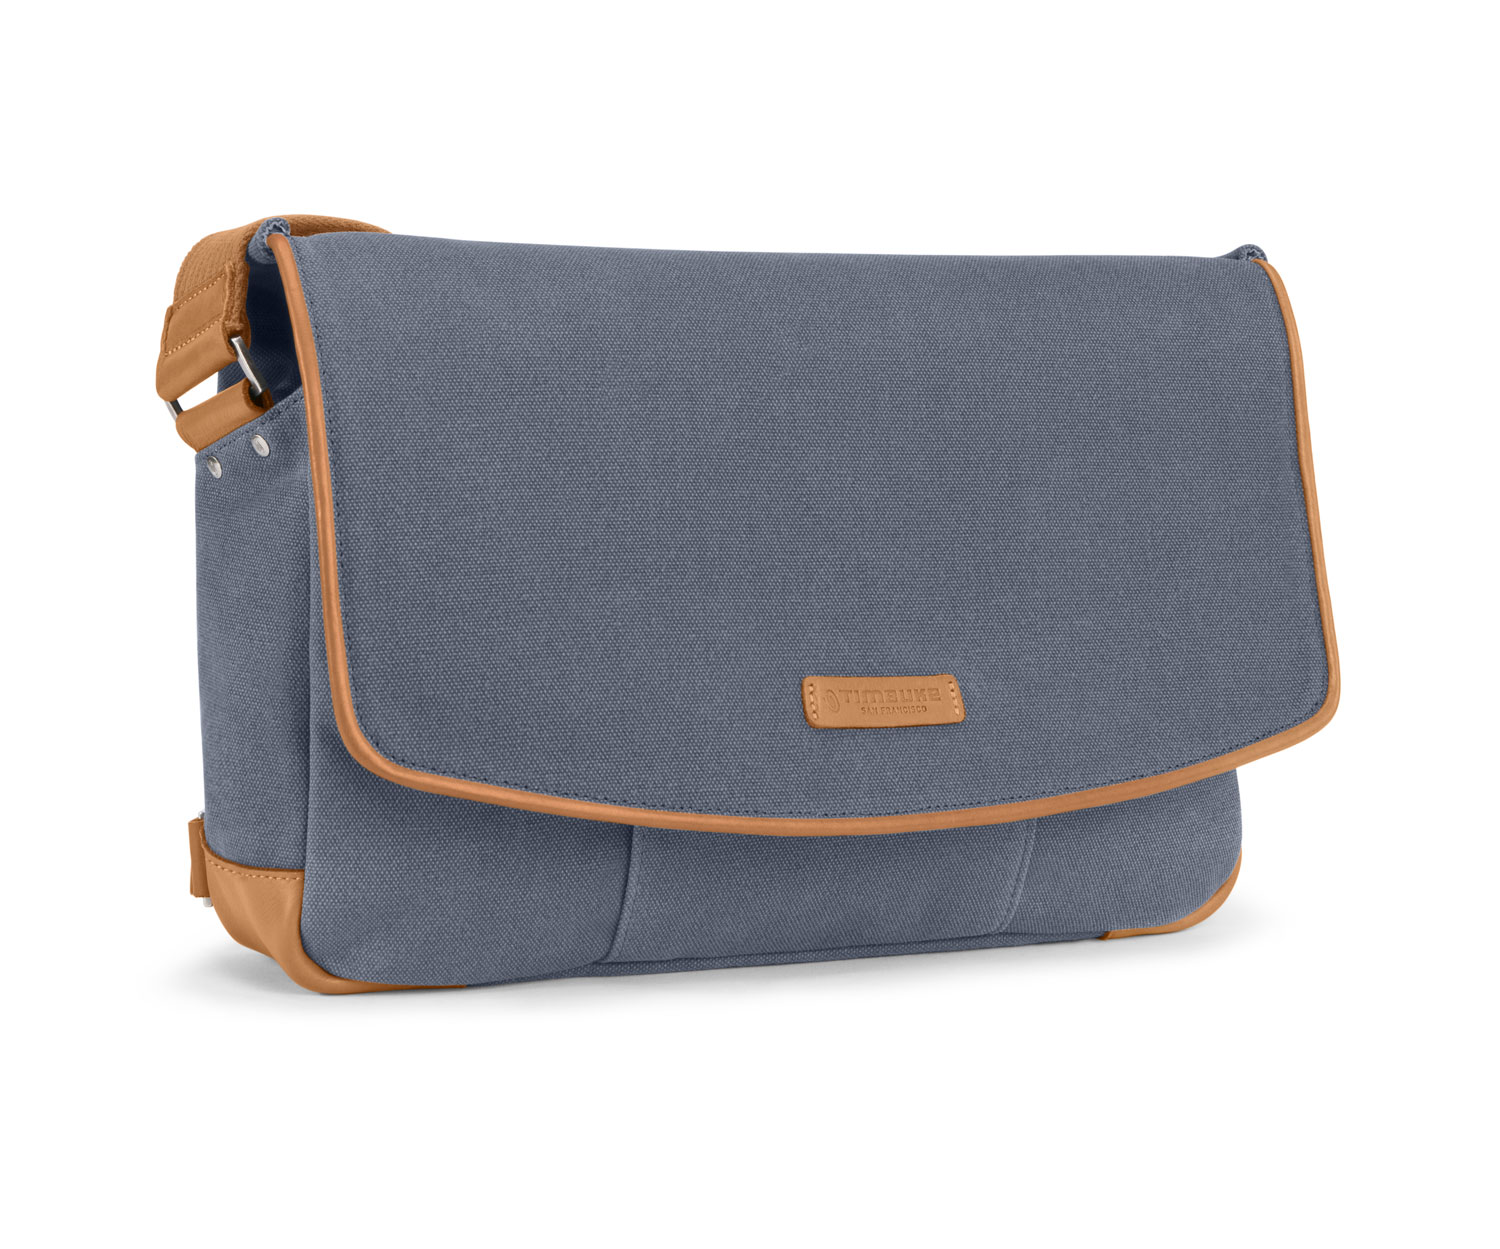 Proof Laptop Messenger Bag 2014 Front